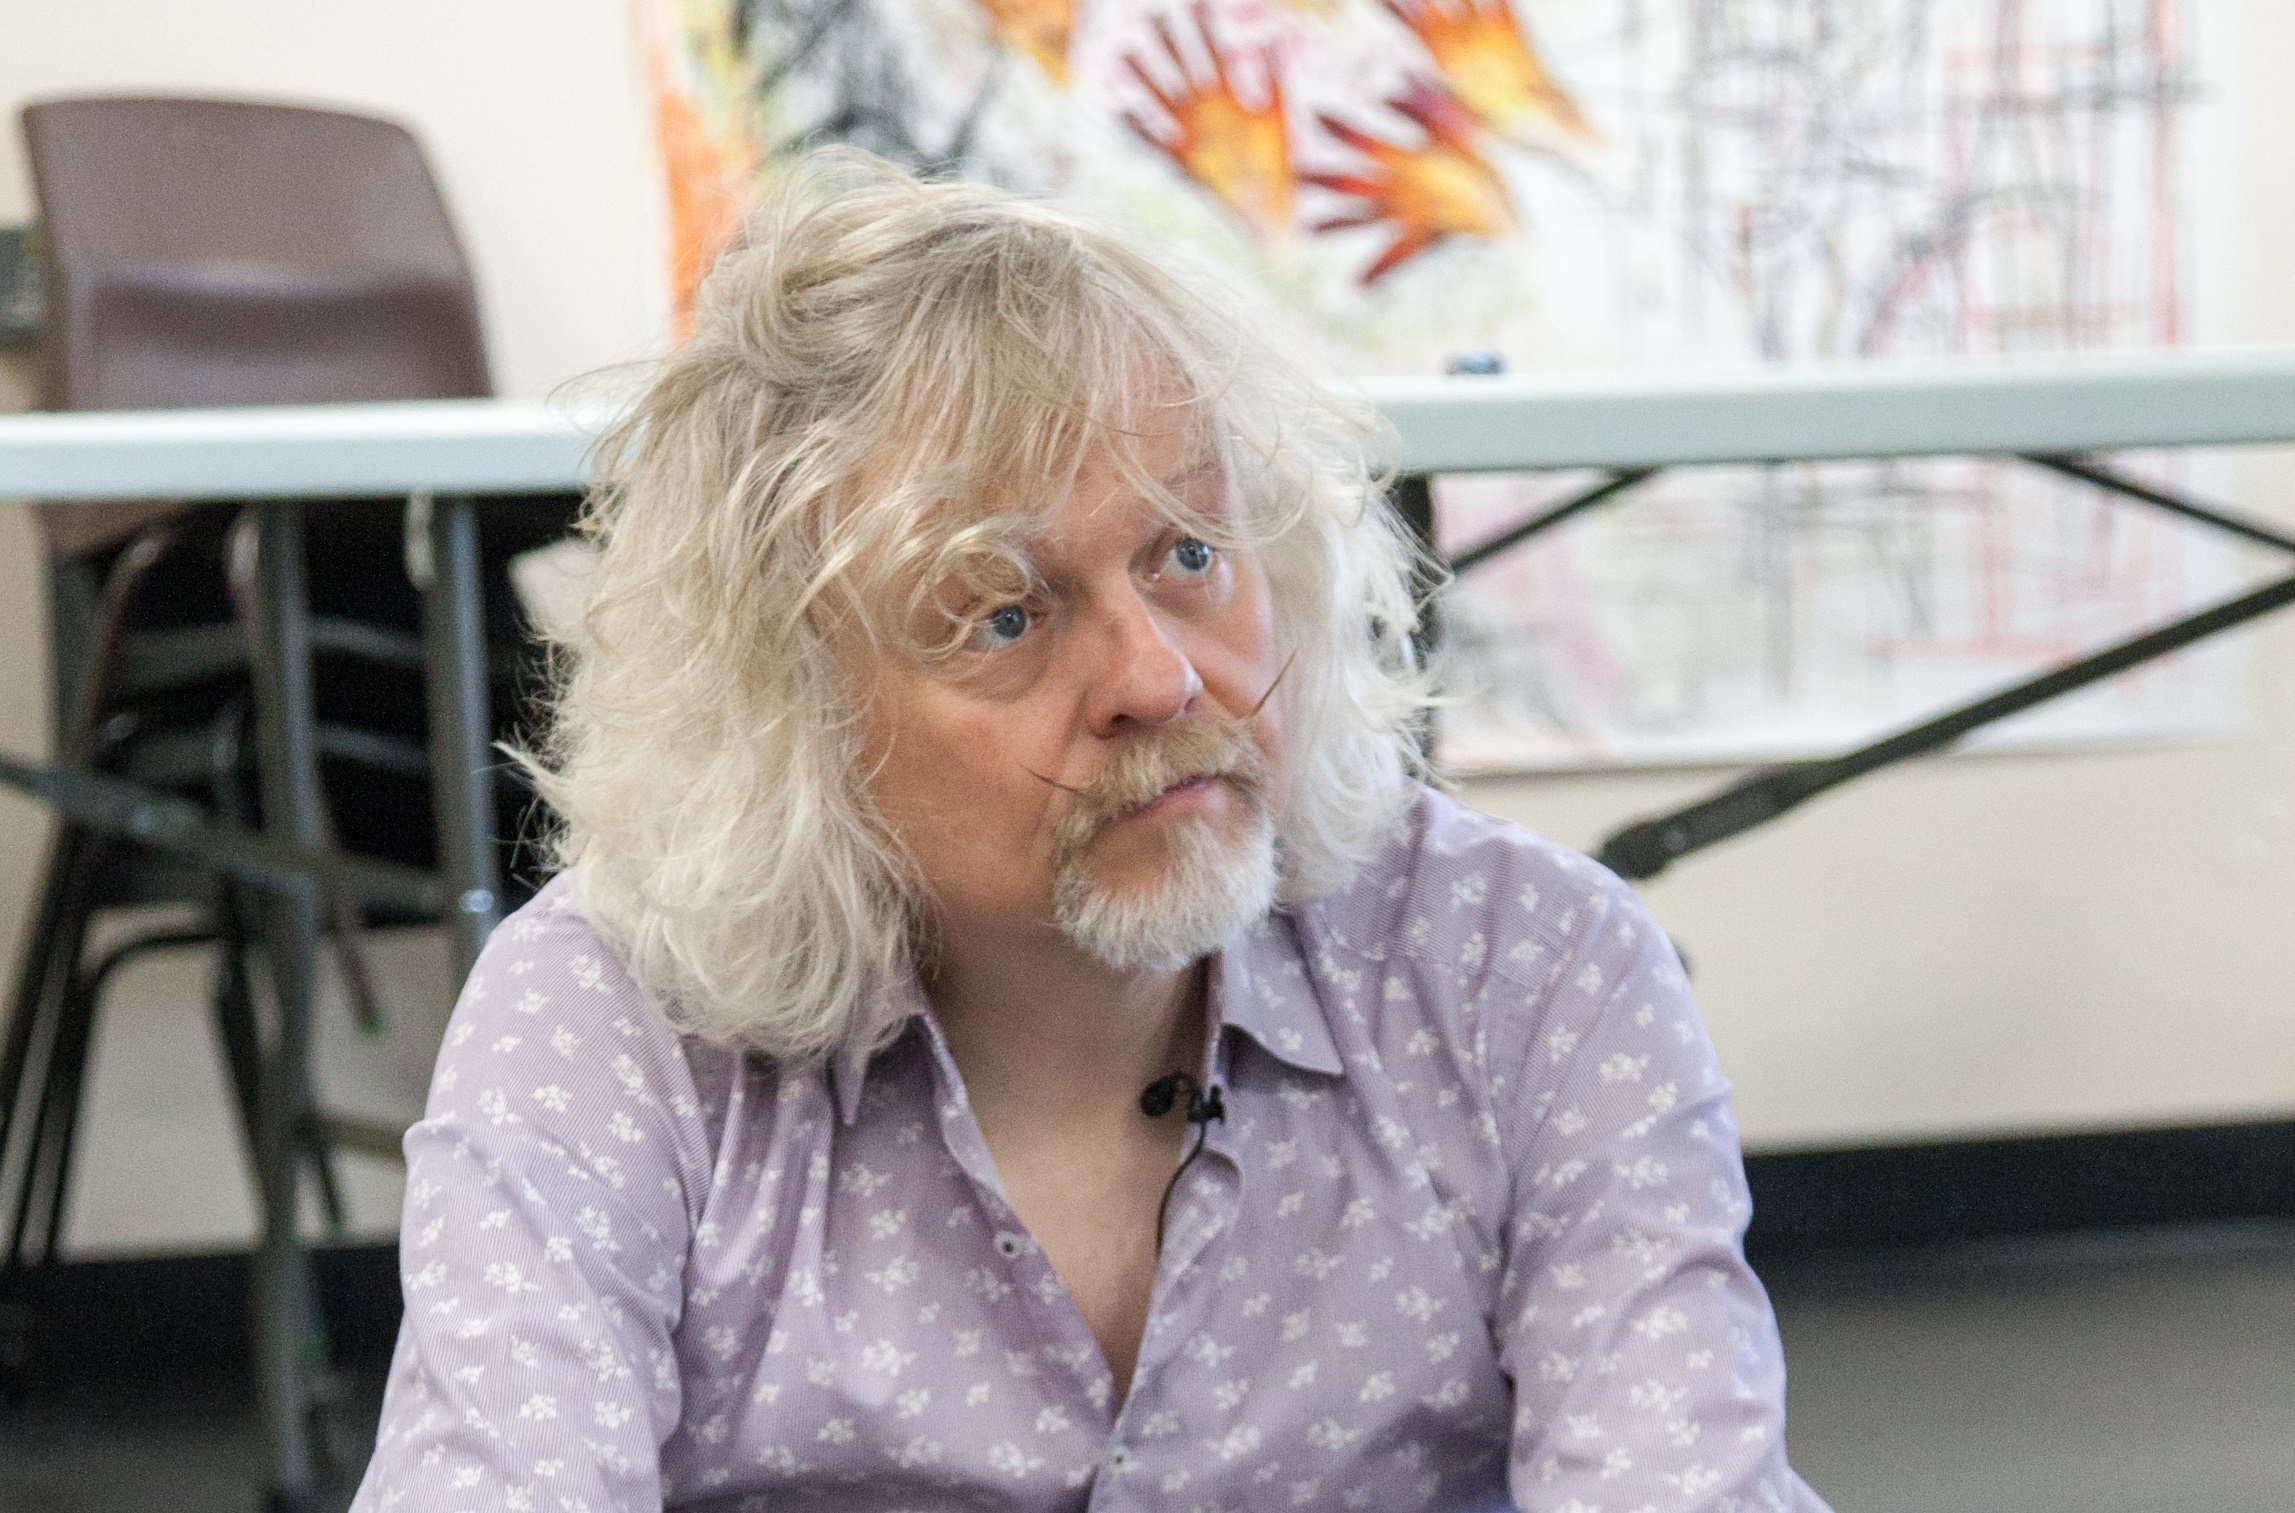 Marty Jopson when he visited Kingsway Campus earlier this year